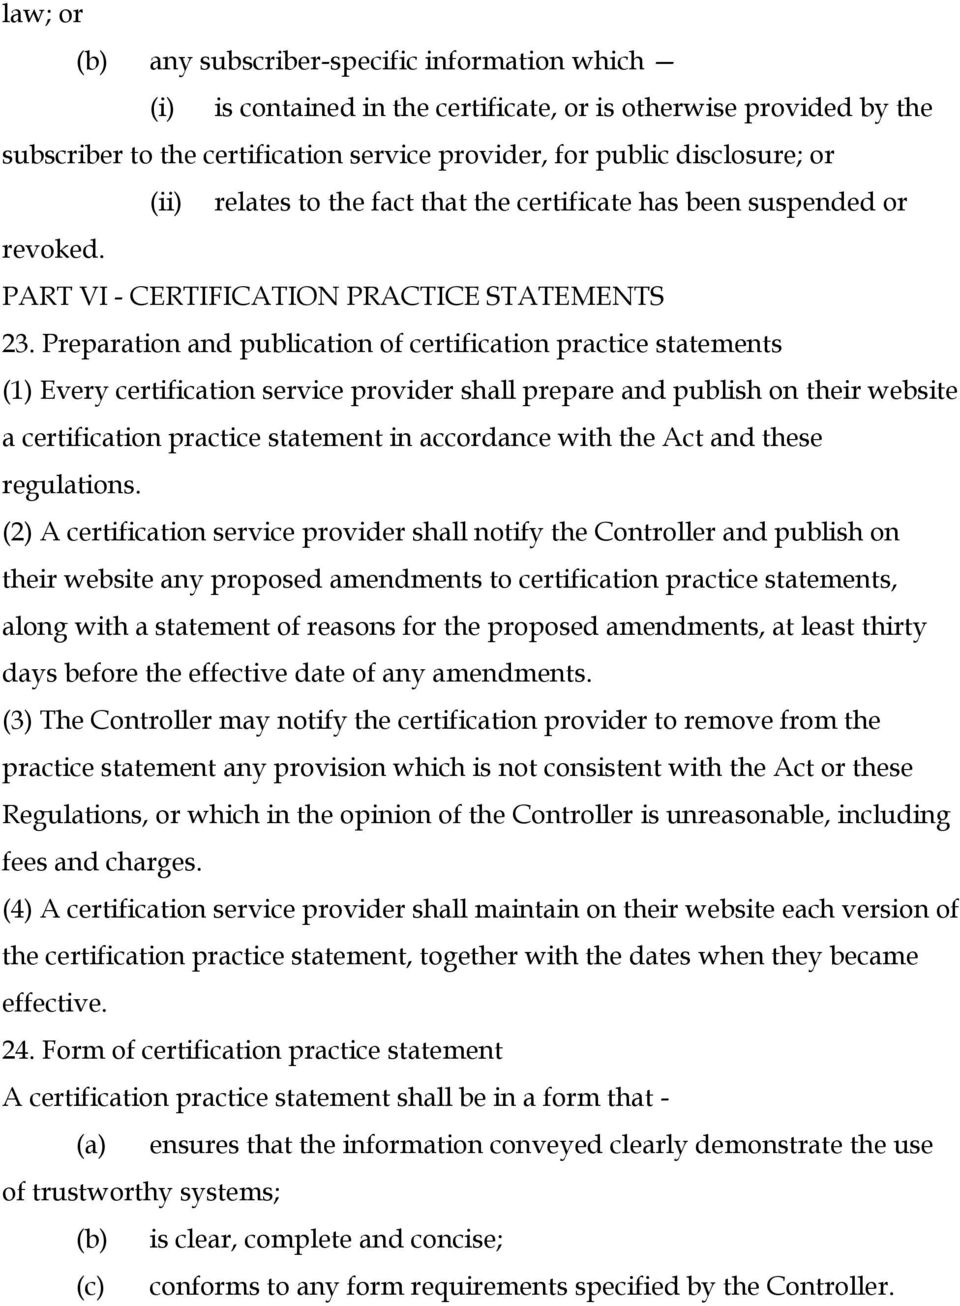 Preparation and publication of certification practice statements (1) Every certification service provider shall prepare and publish on their website a certification practice statement in accordance